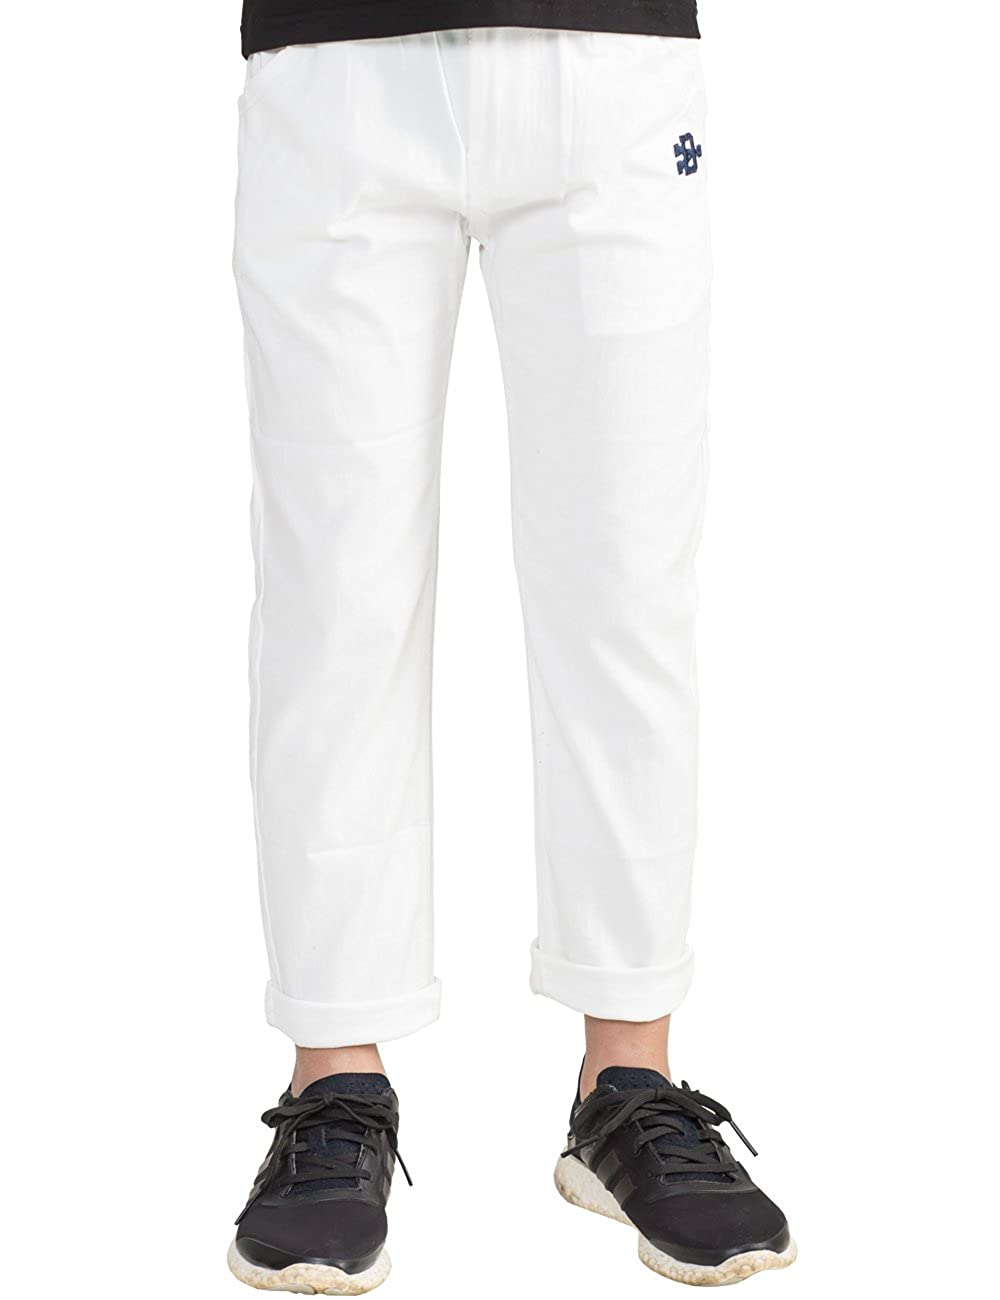 BYCR Boys' Solid Color Elastic Chino Cotton Pant for Kids Size 4 16